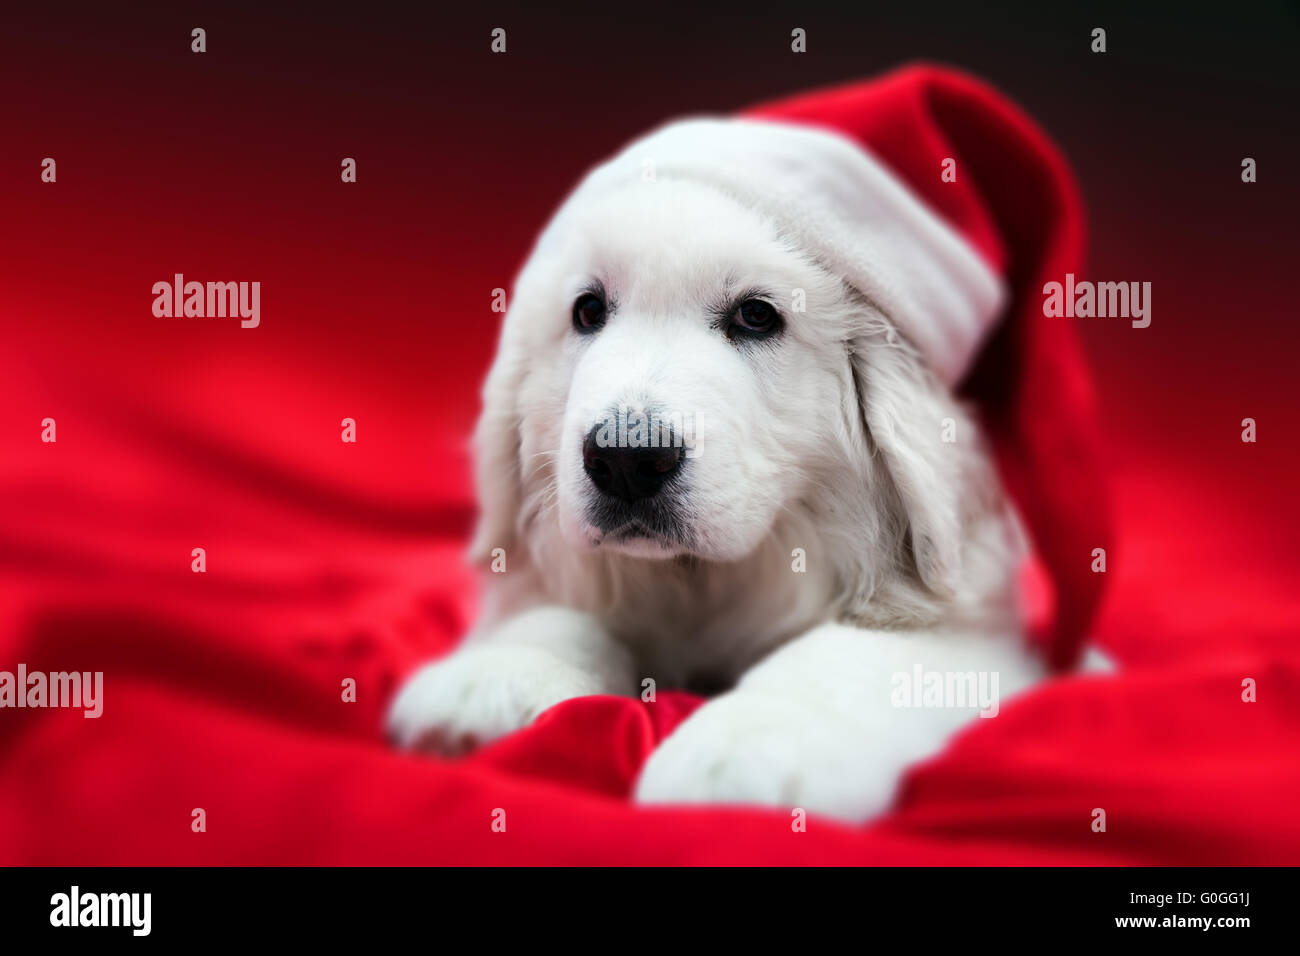 Cute white puppy dog in Chrstimas hat lying in red satin Holiday